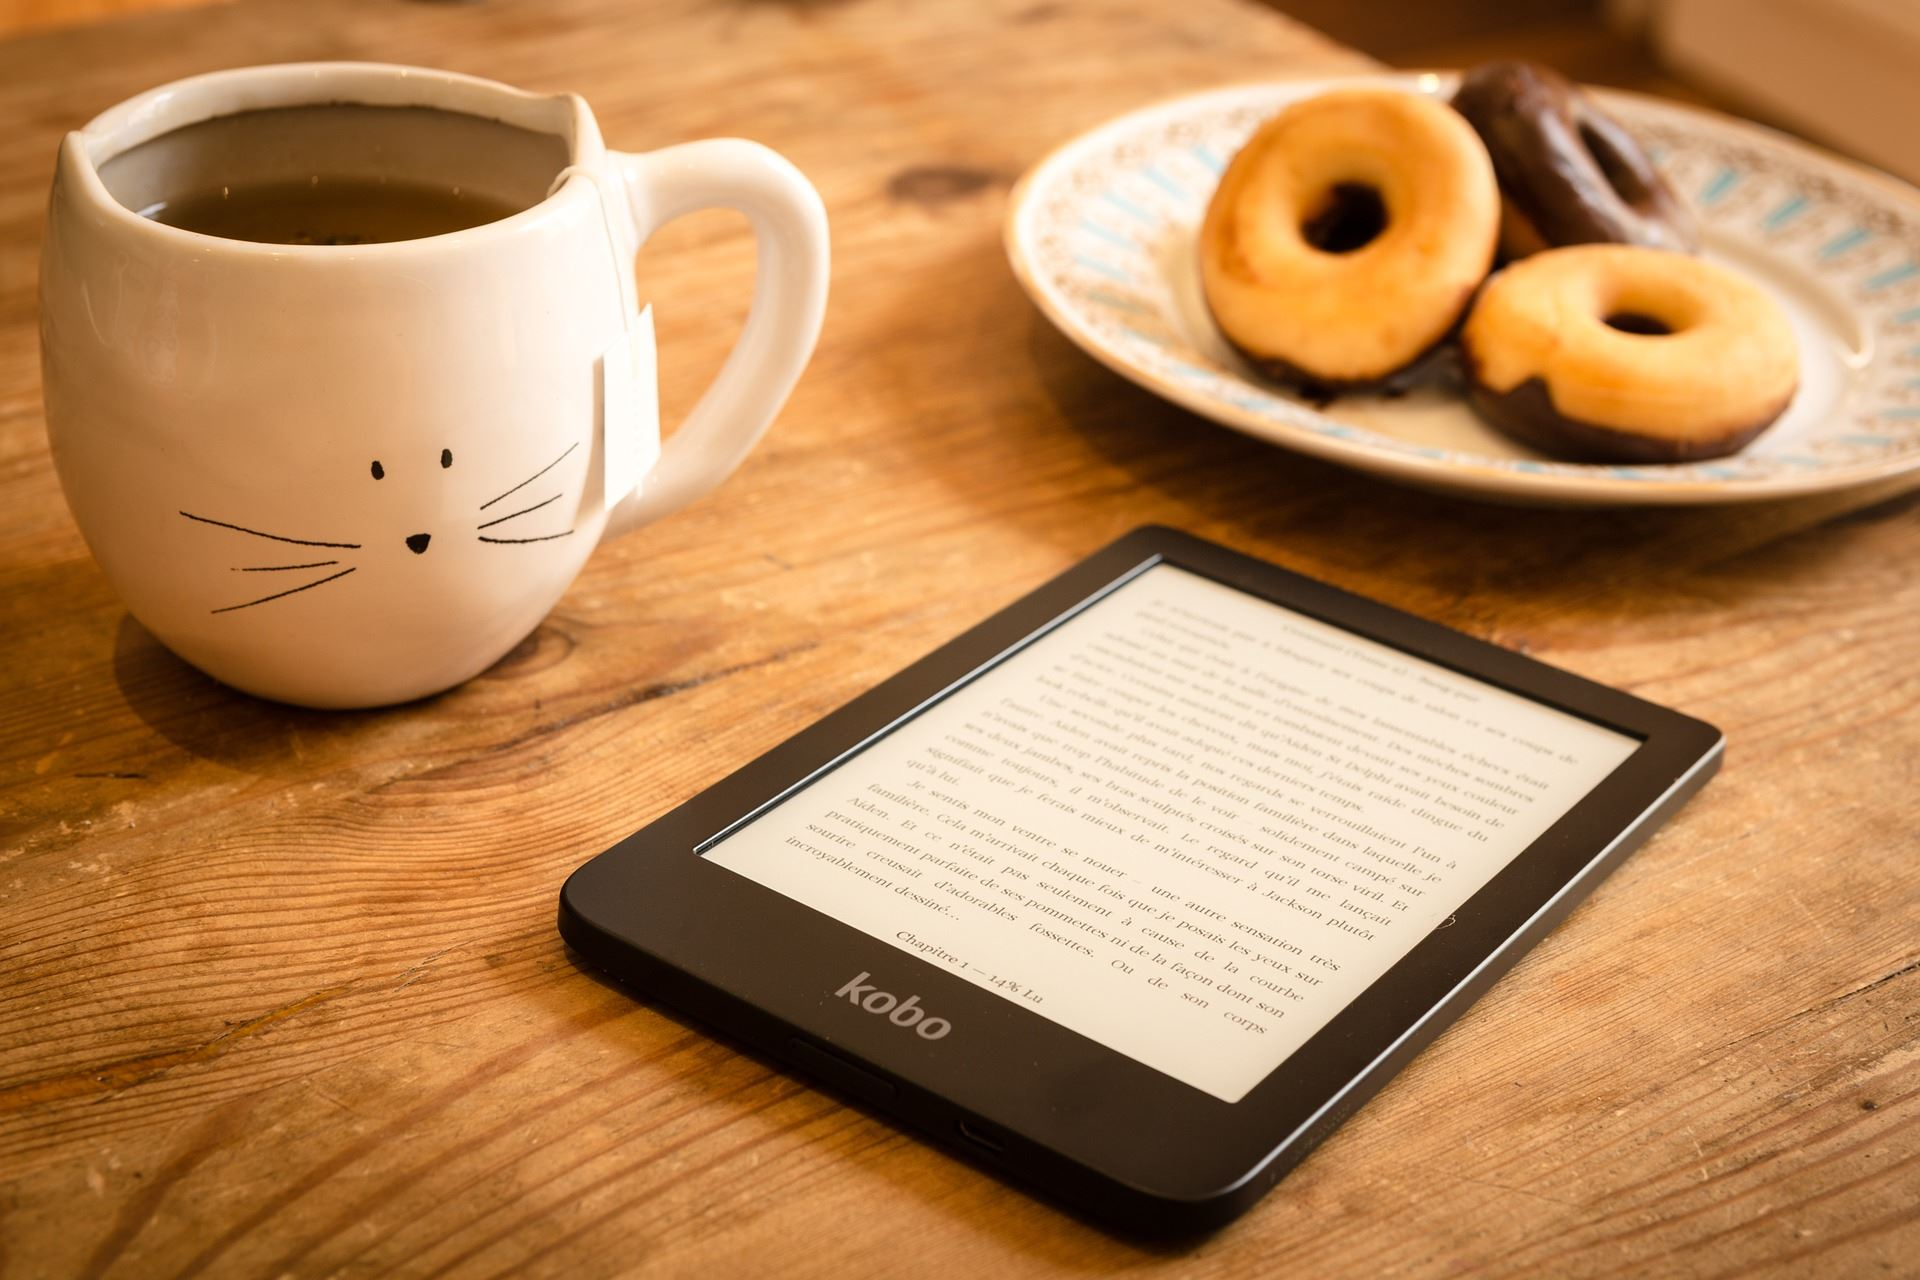 E-reader with tea and donut